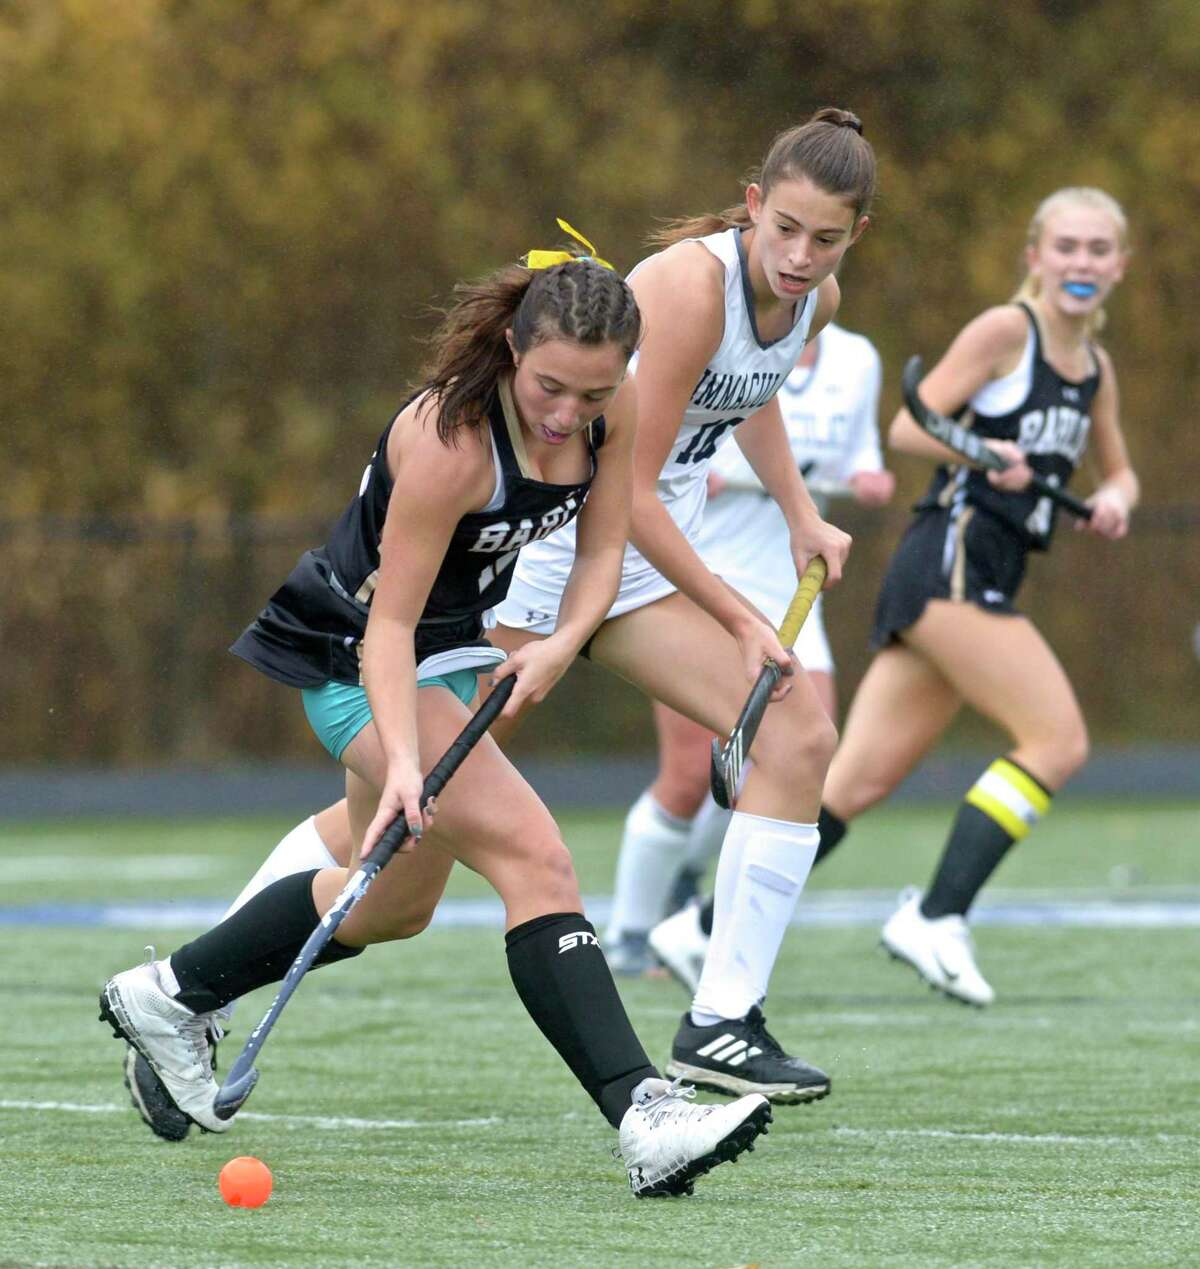 Joel Barlow's Marin Kalamaras (12) moves the ball out of the reach of Immaculate's Sadie Jarboe (10) in the girls SWC Field Hockey South championship game between No. 3 Joel Barlow and No. 1 Immaculate high schools, Friday afternoon, November 13, 2020 at Immaculate High School, Danbury, Conn.